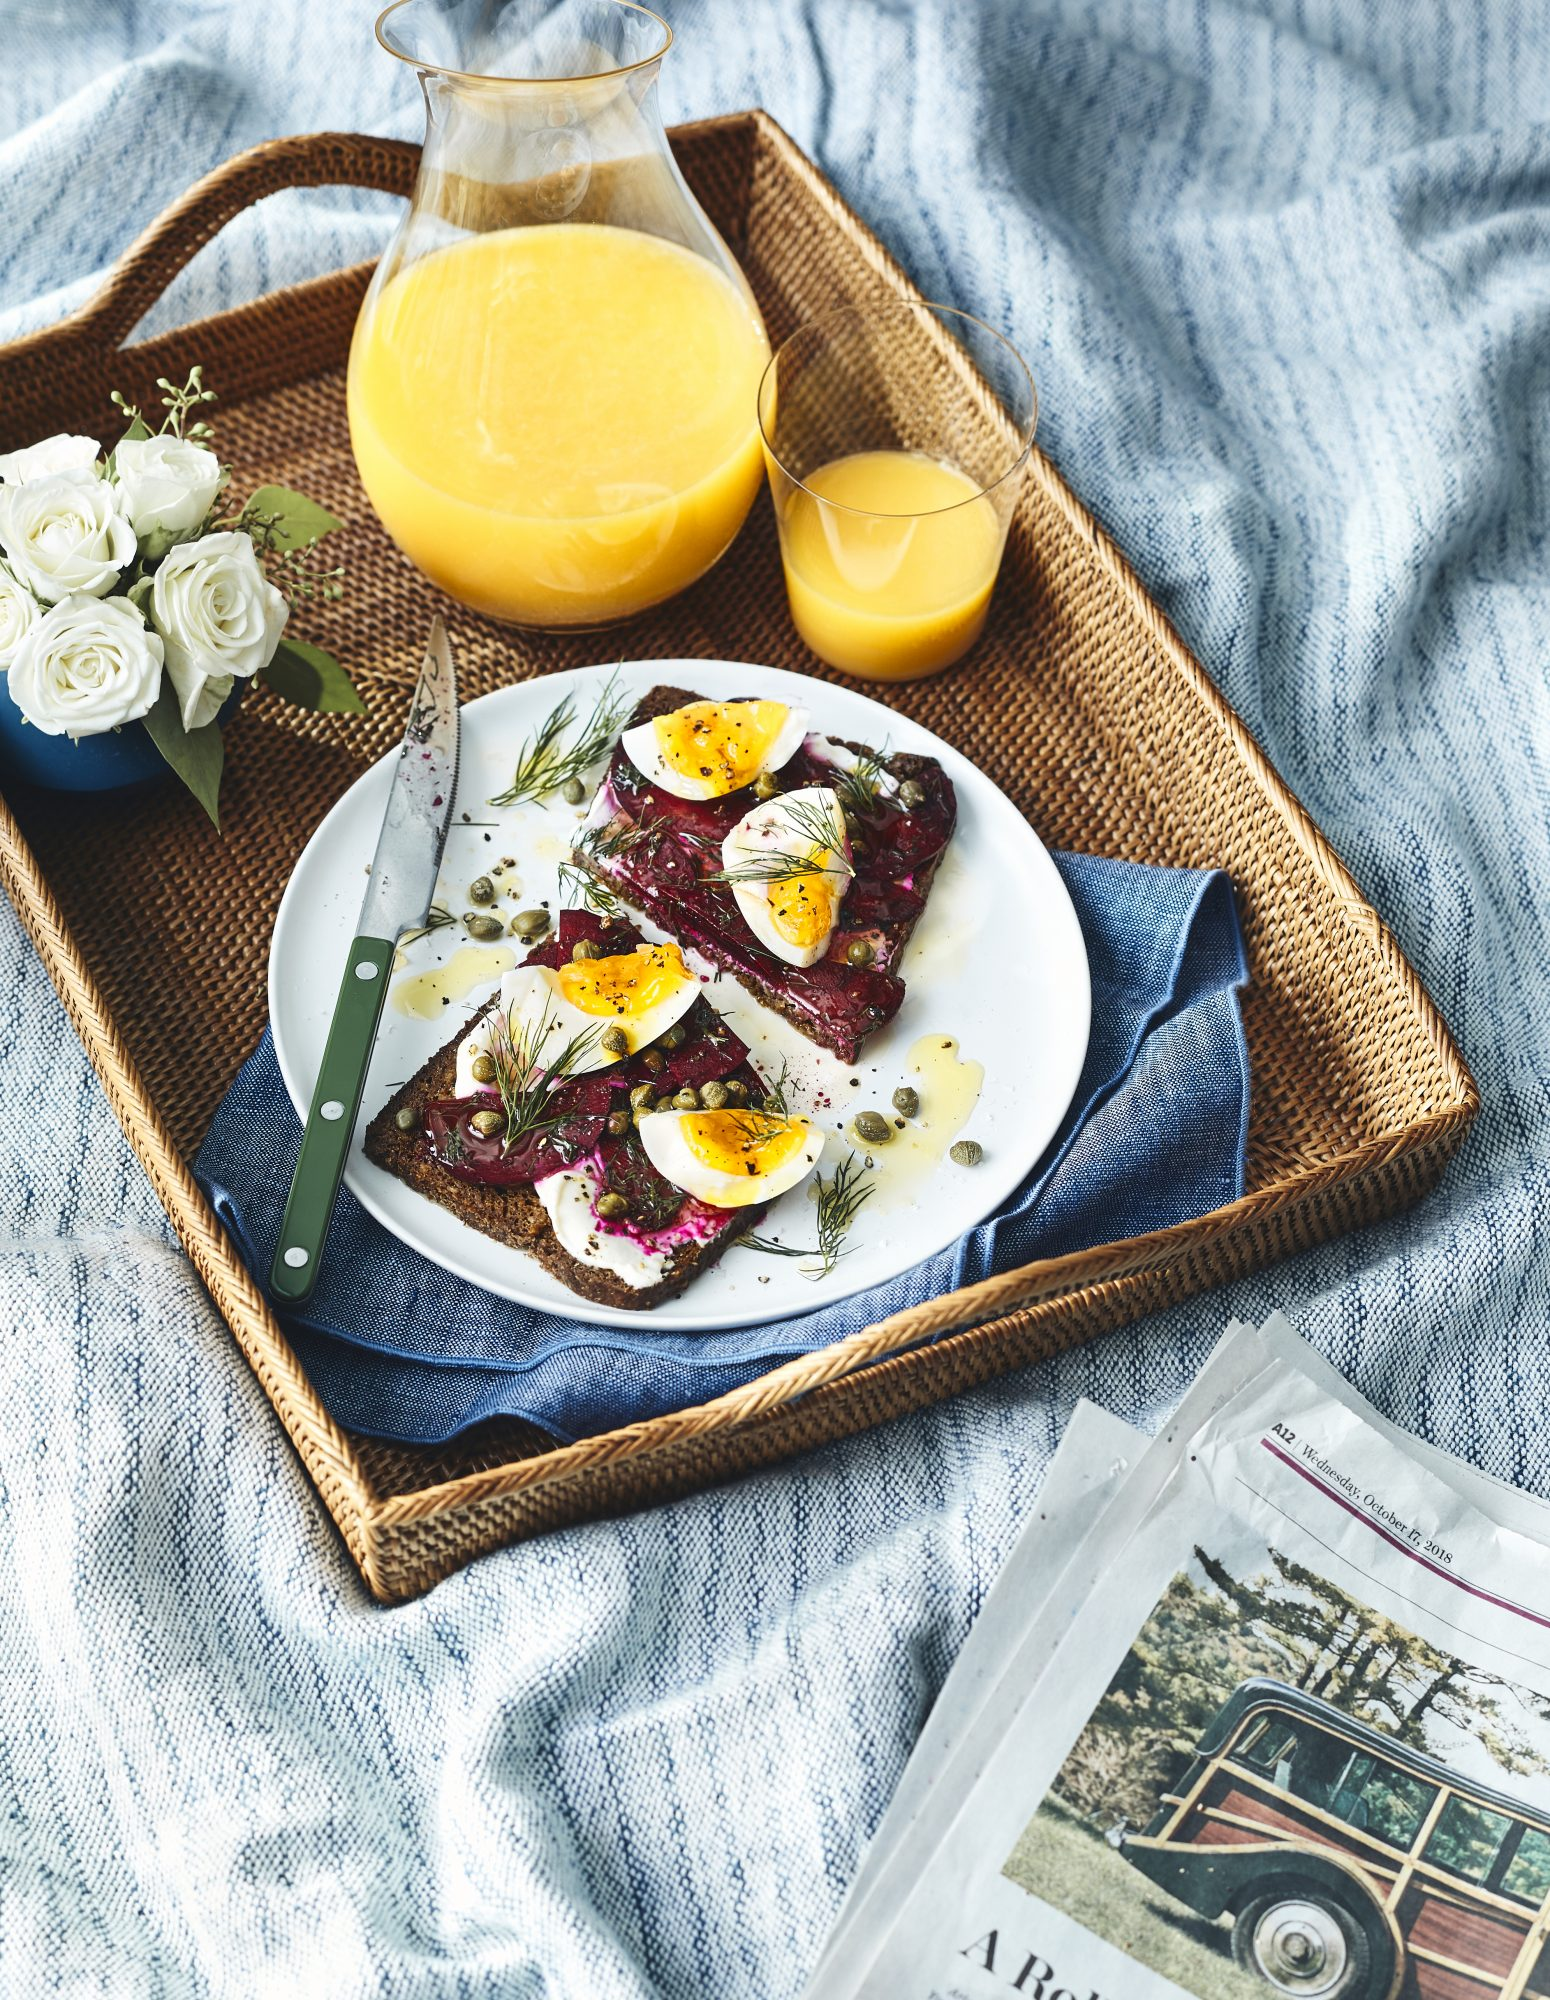 Smørrebrød With Yogurt, Beets, and Eggs